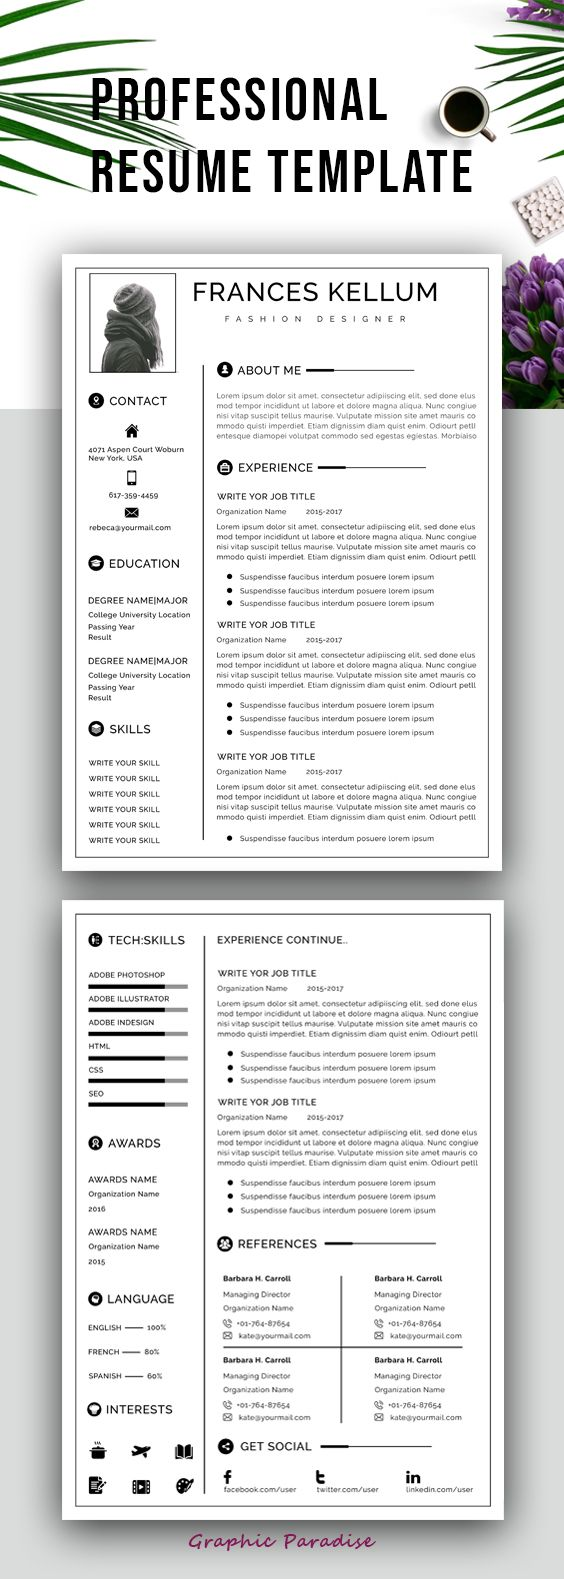 The Modern Resume Resume Template Instant Download Professional Resume Template .